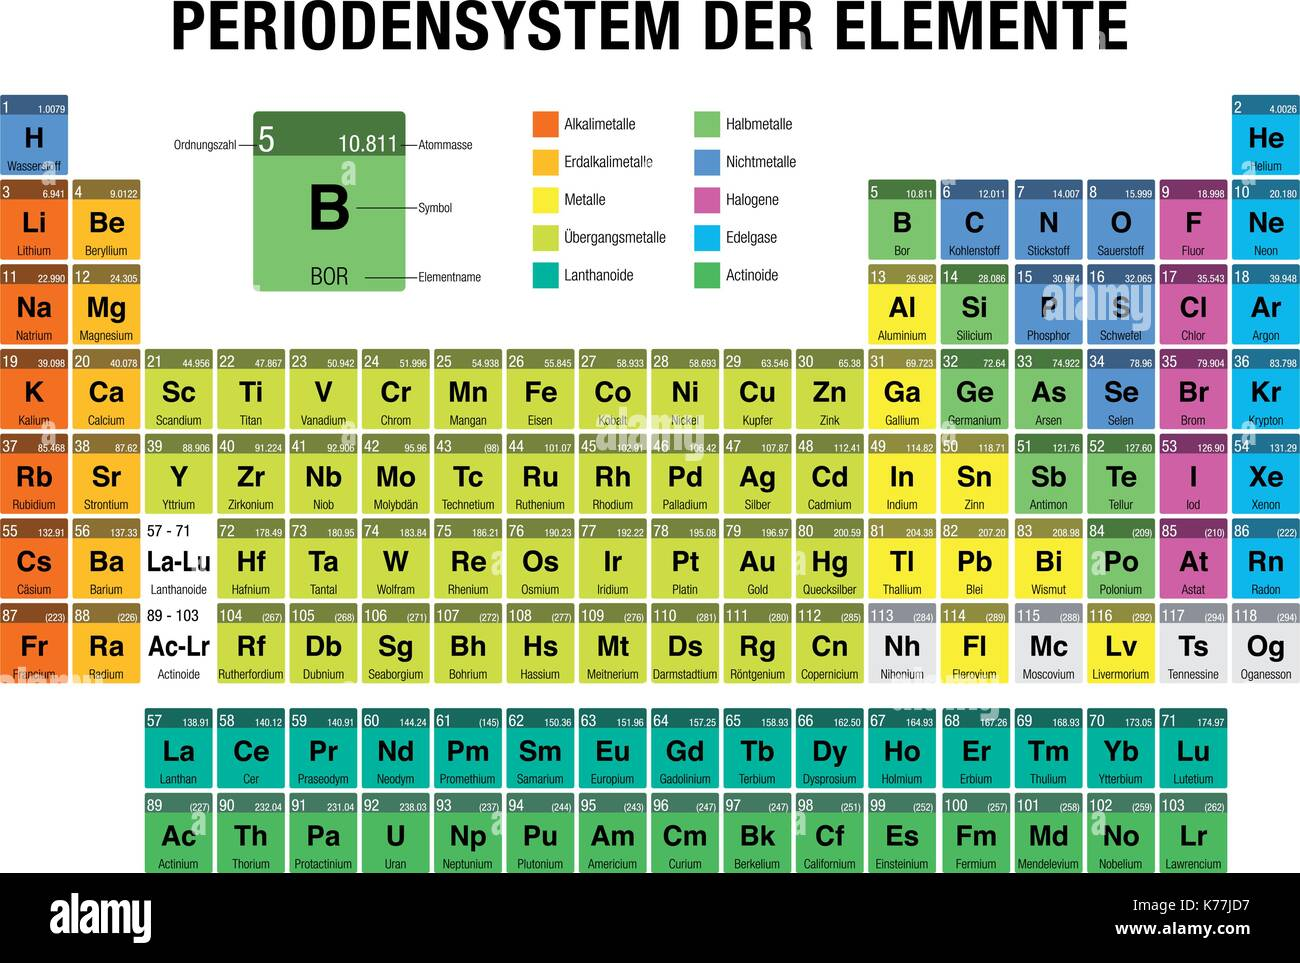 Periodensystem der elemente stock photos periodensystem der periodensystem der elemente periodic table of elements in german language on white background with urtaz Choice Image